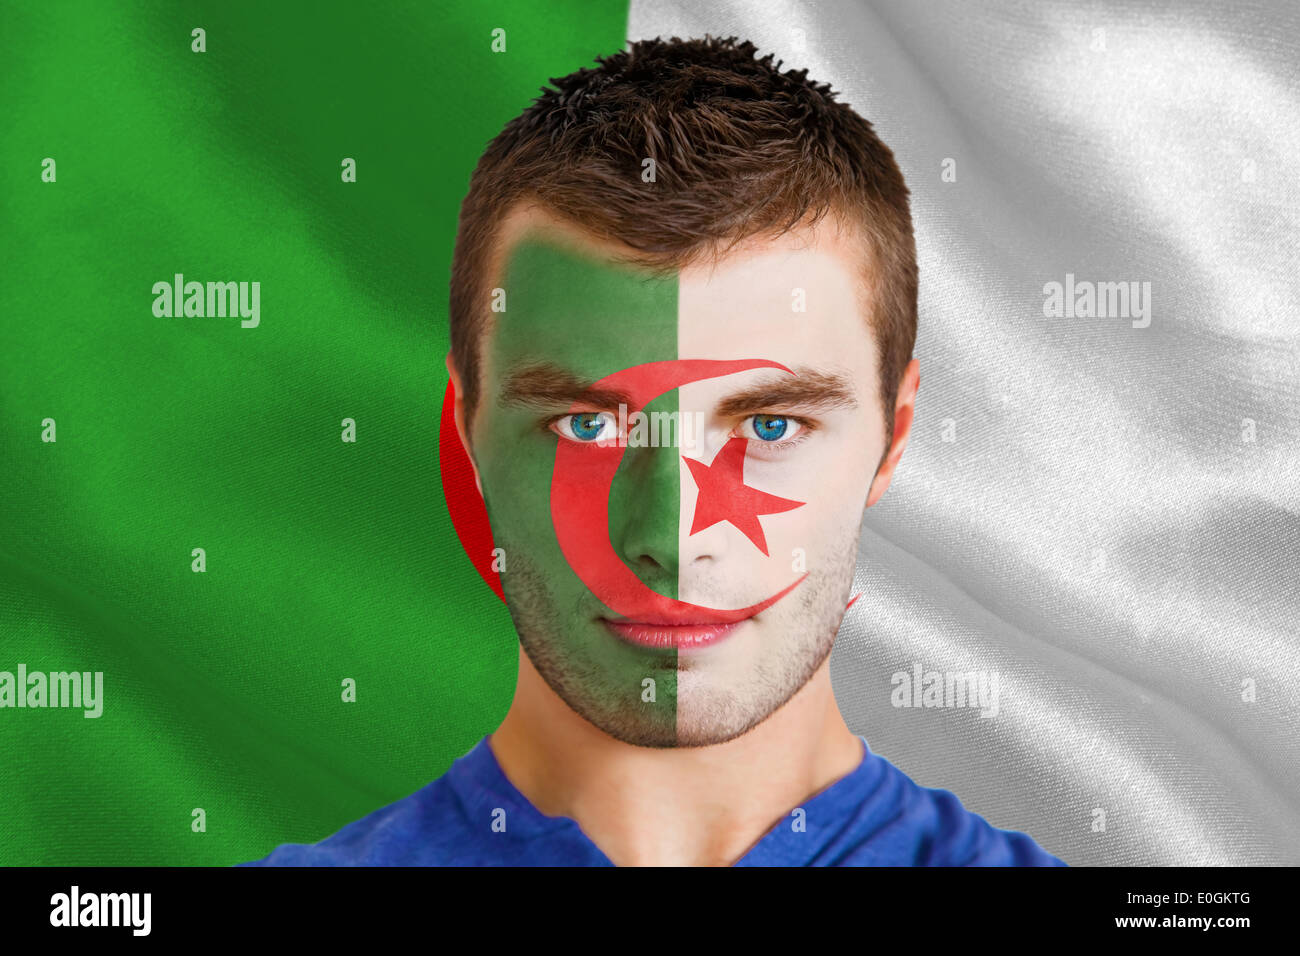 Serious young algeria fan with facepaint - Stock Image